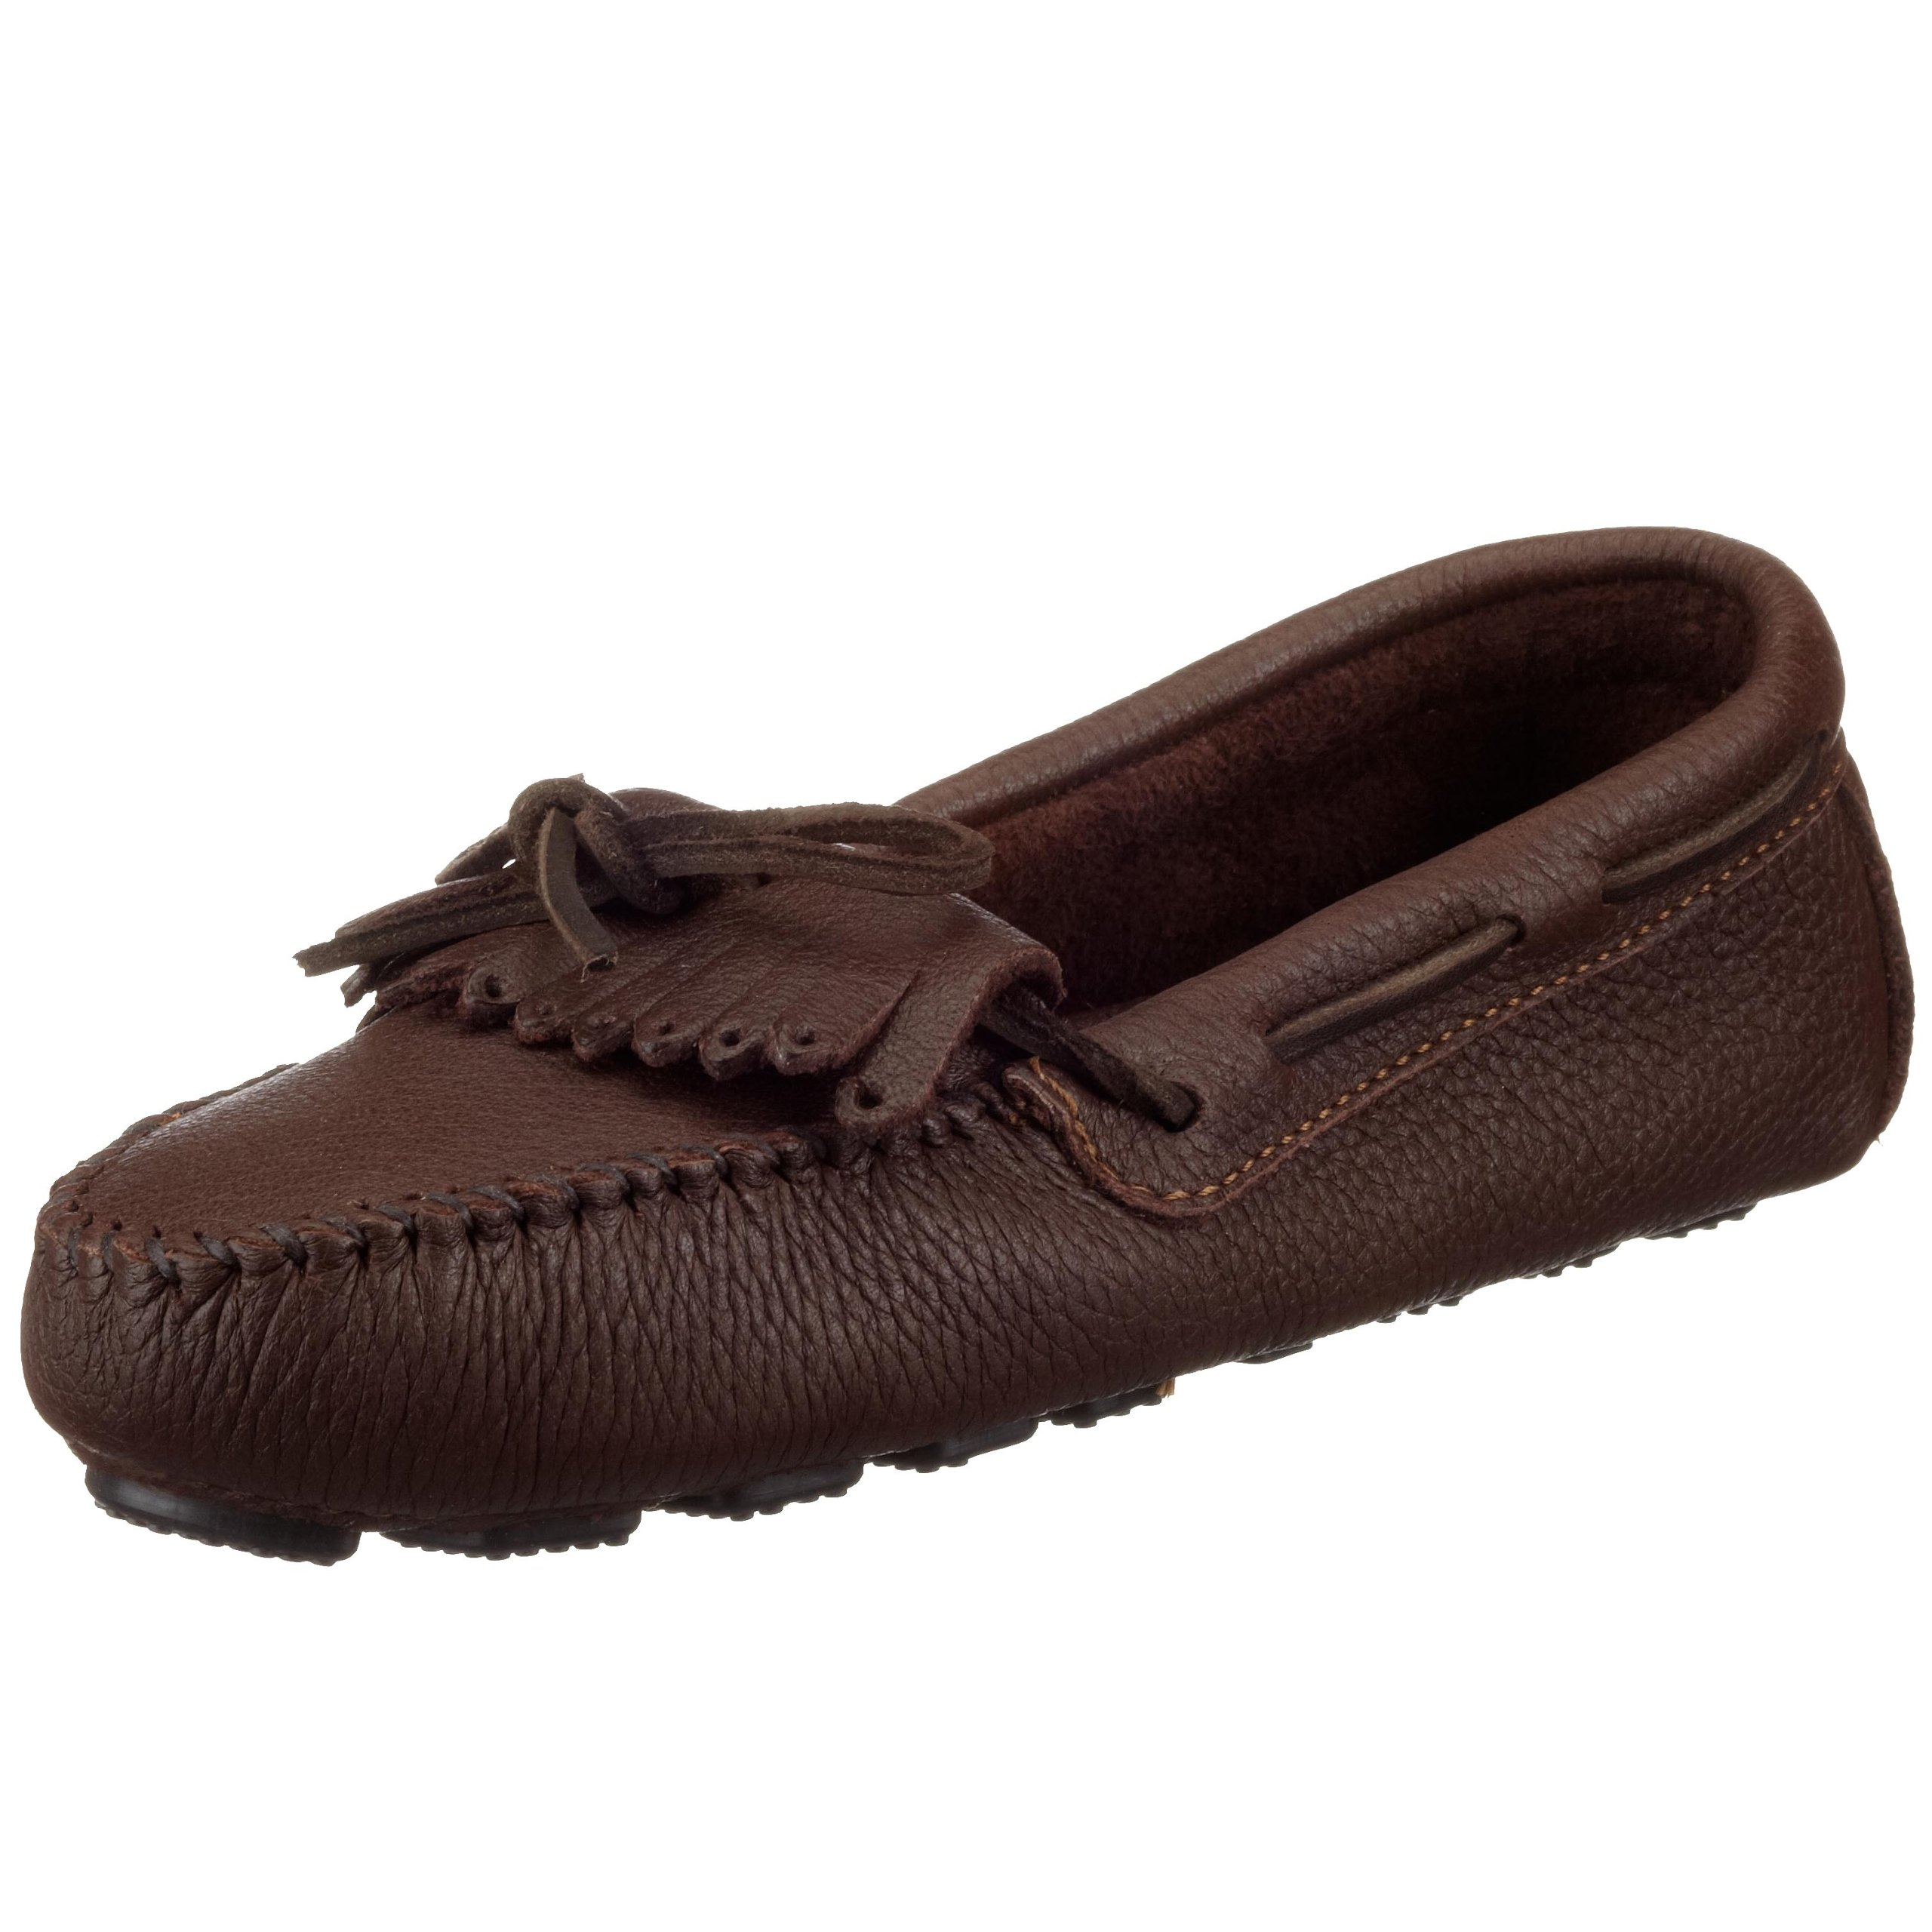 Minnetonka Women's Moosehide Driving Moccasin,Chocolate Moose,9 M US by Minnetonka